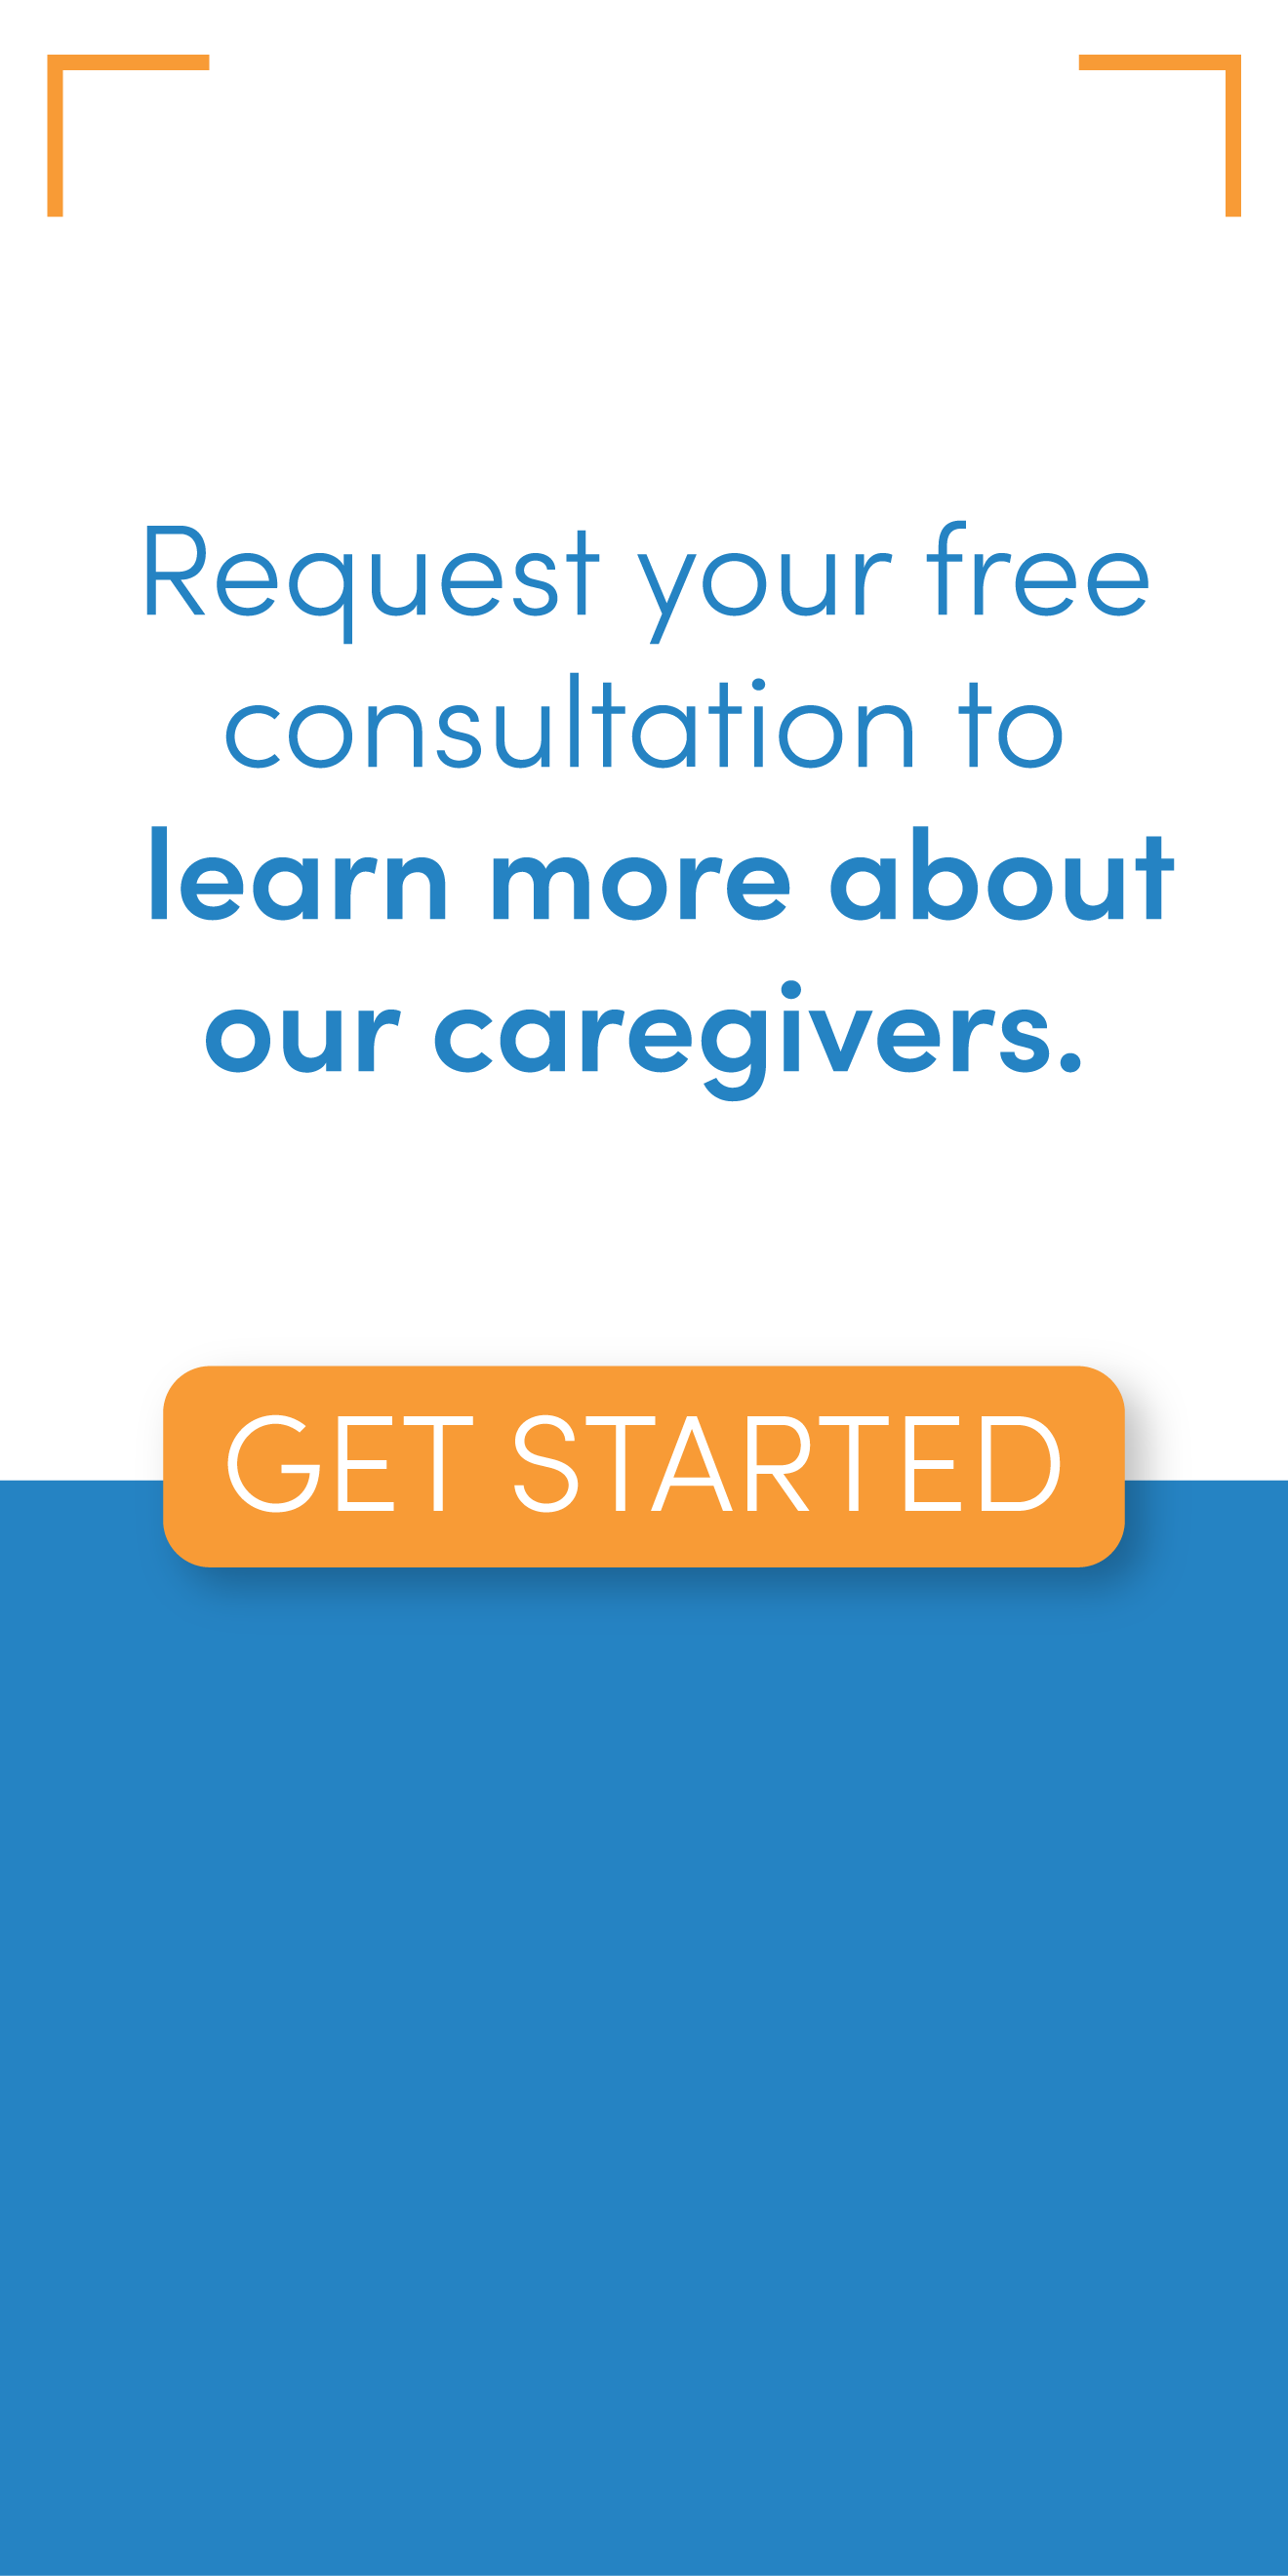 Request your free consultation to learn more about our caregivers